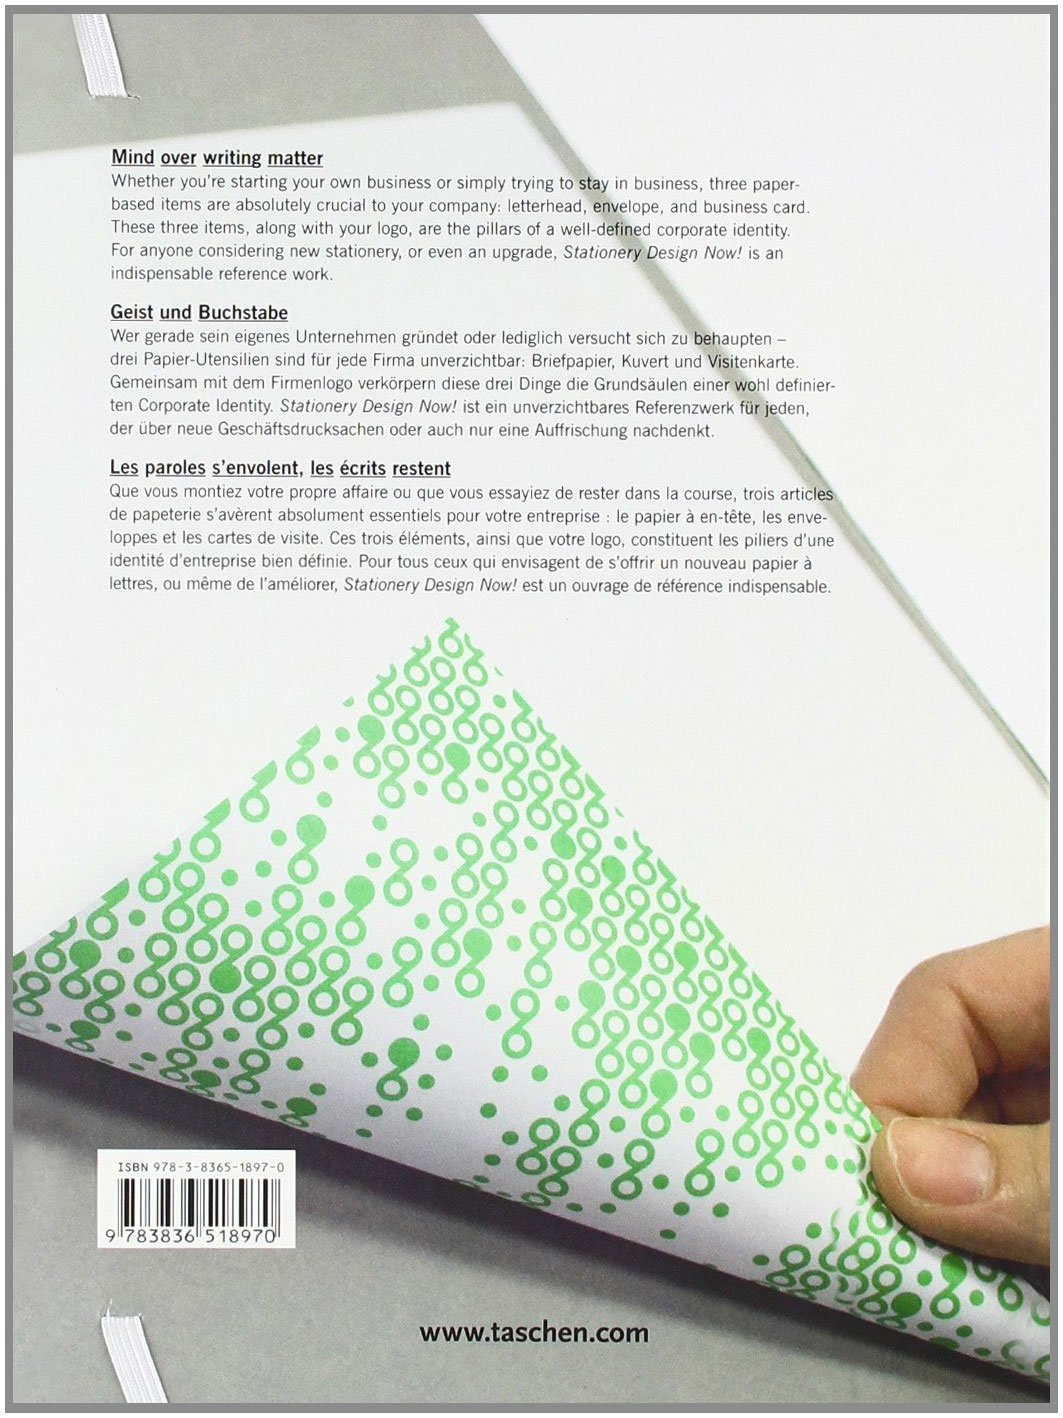 Stationery Design Now!: Julius Wiedemann: 9783836518970: Amazon ...